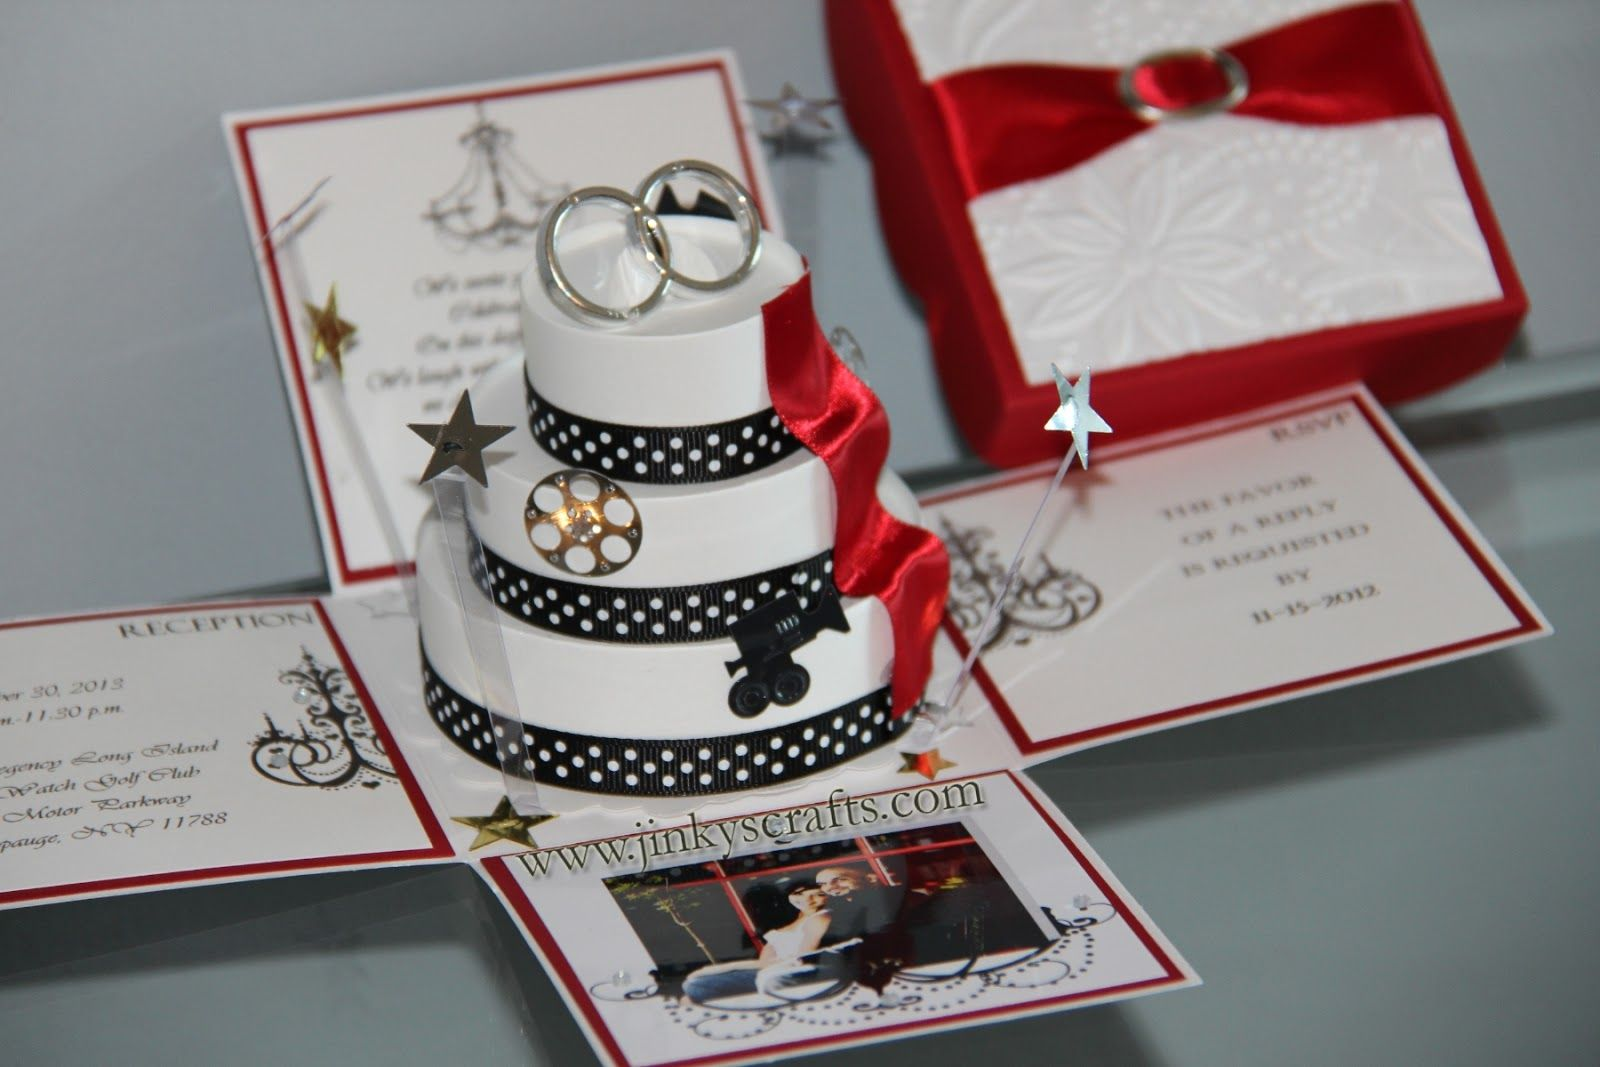 The 4 panels are lovingly adorned with Wedding Invitation Wordings ...